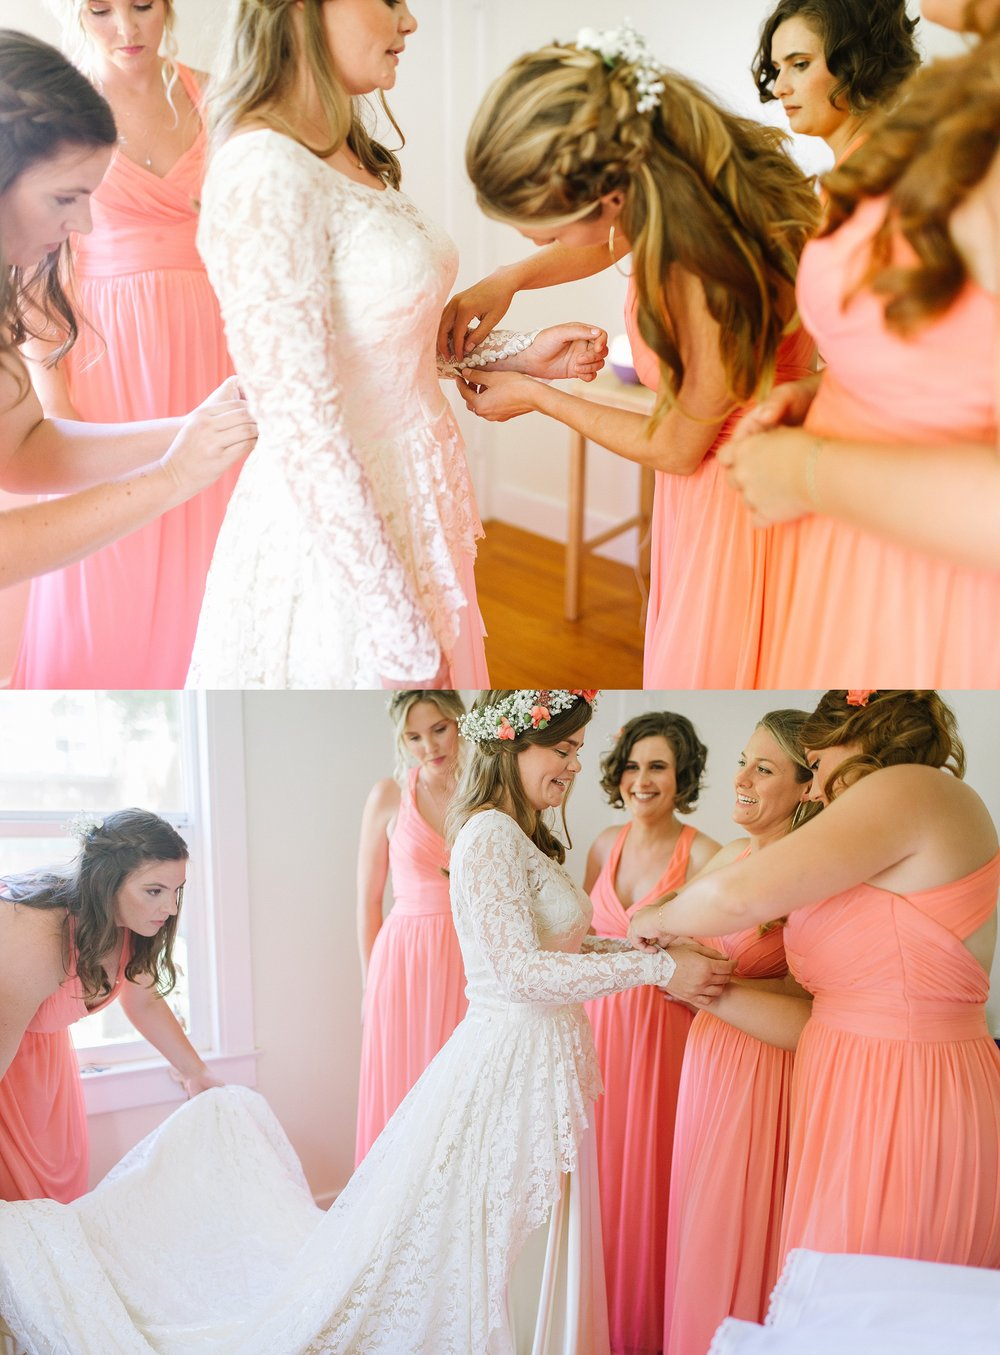 fairfax_ranch_wedding_chelsea_dier_photography_0014.jpg